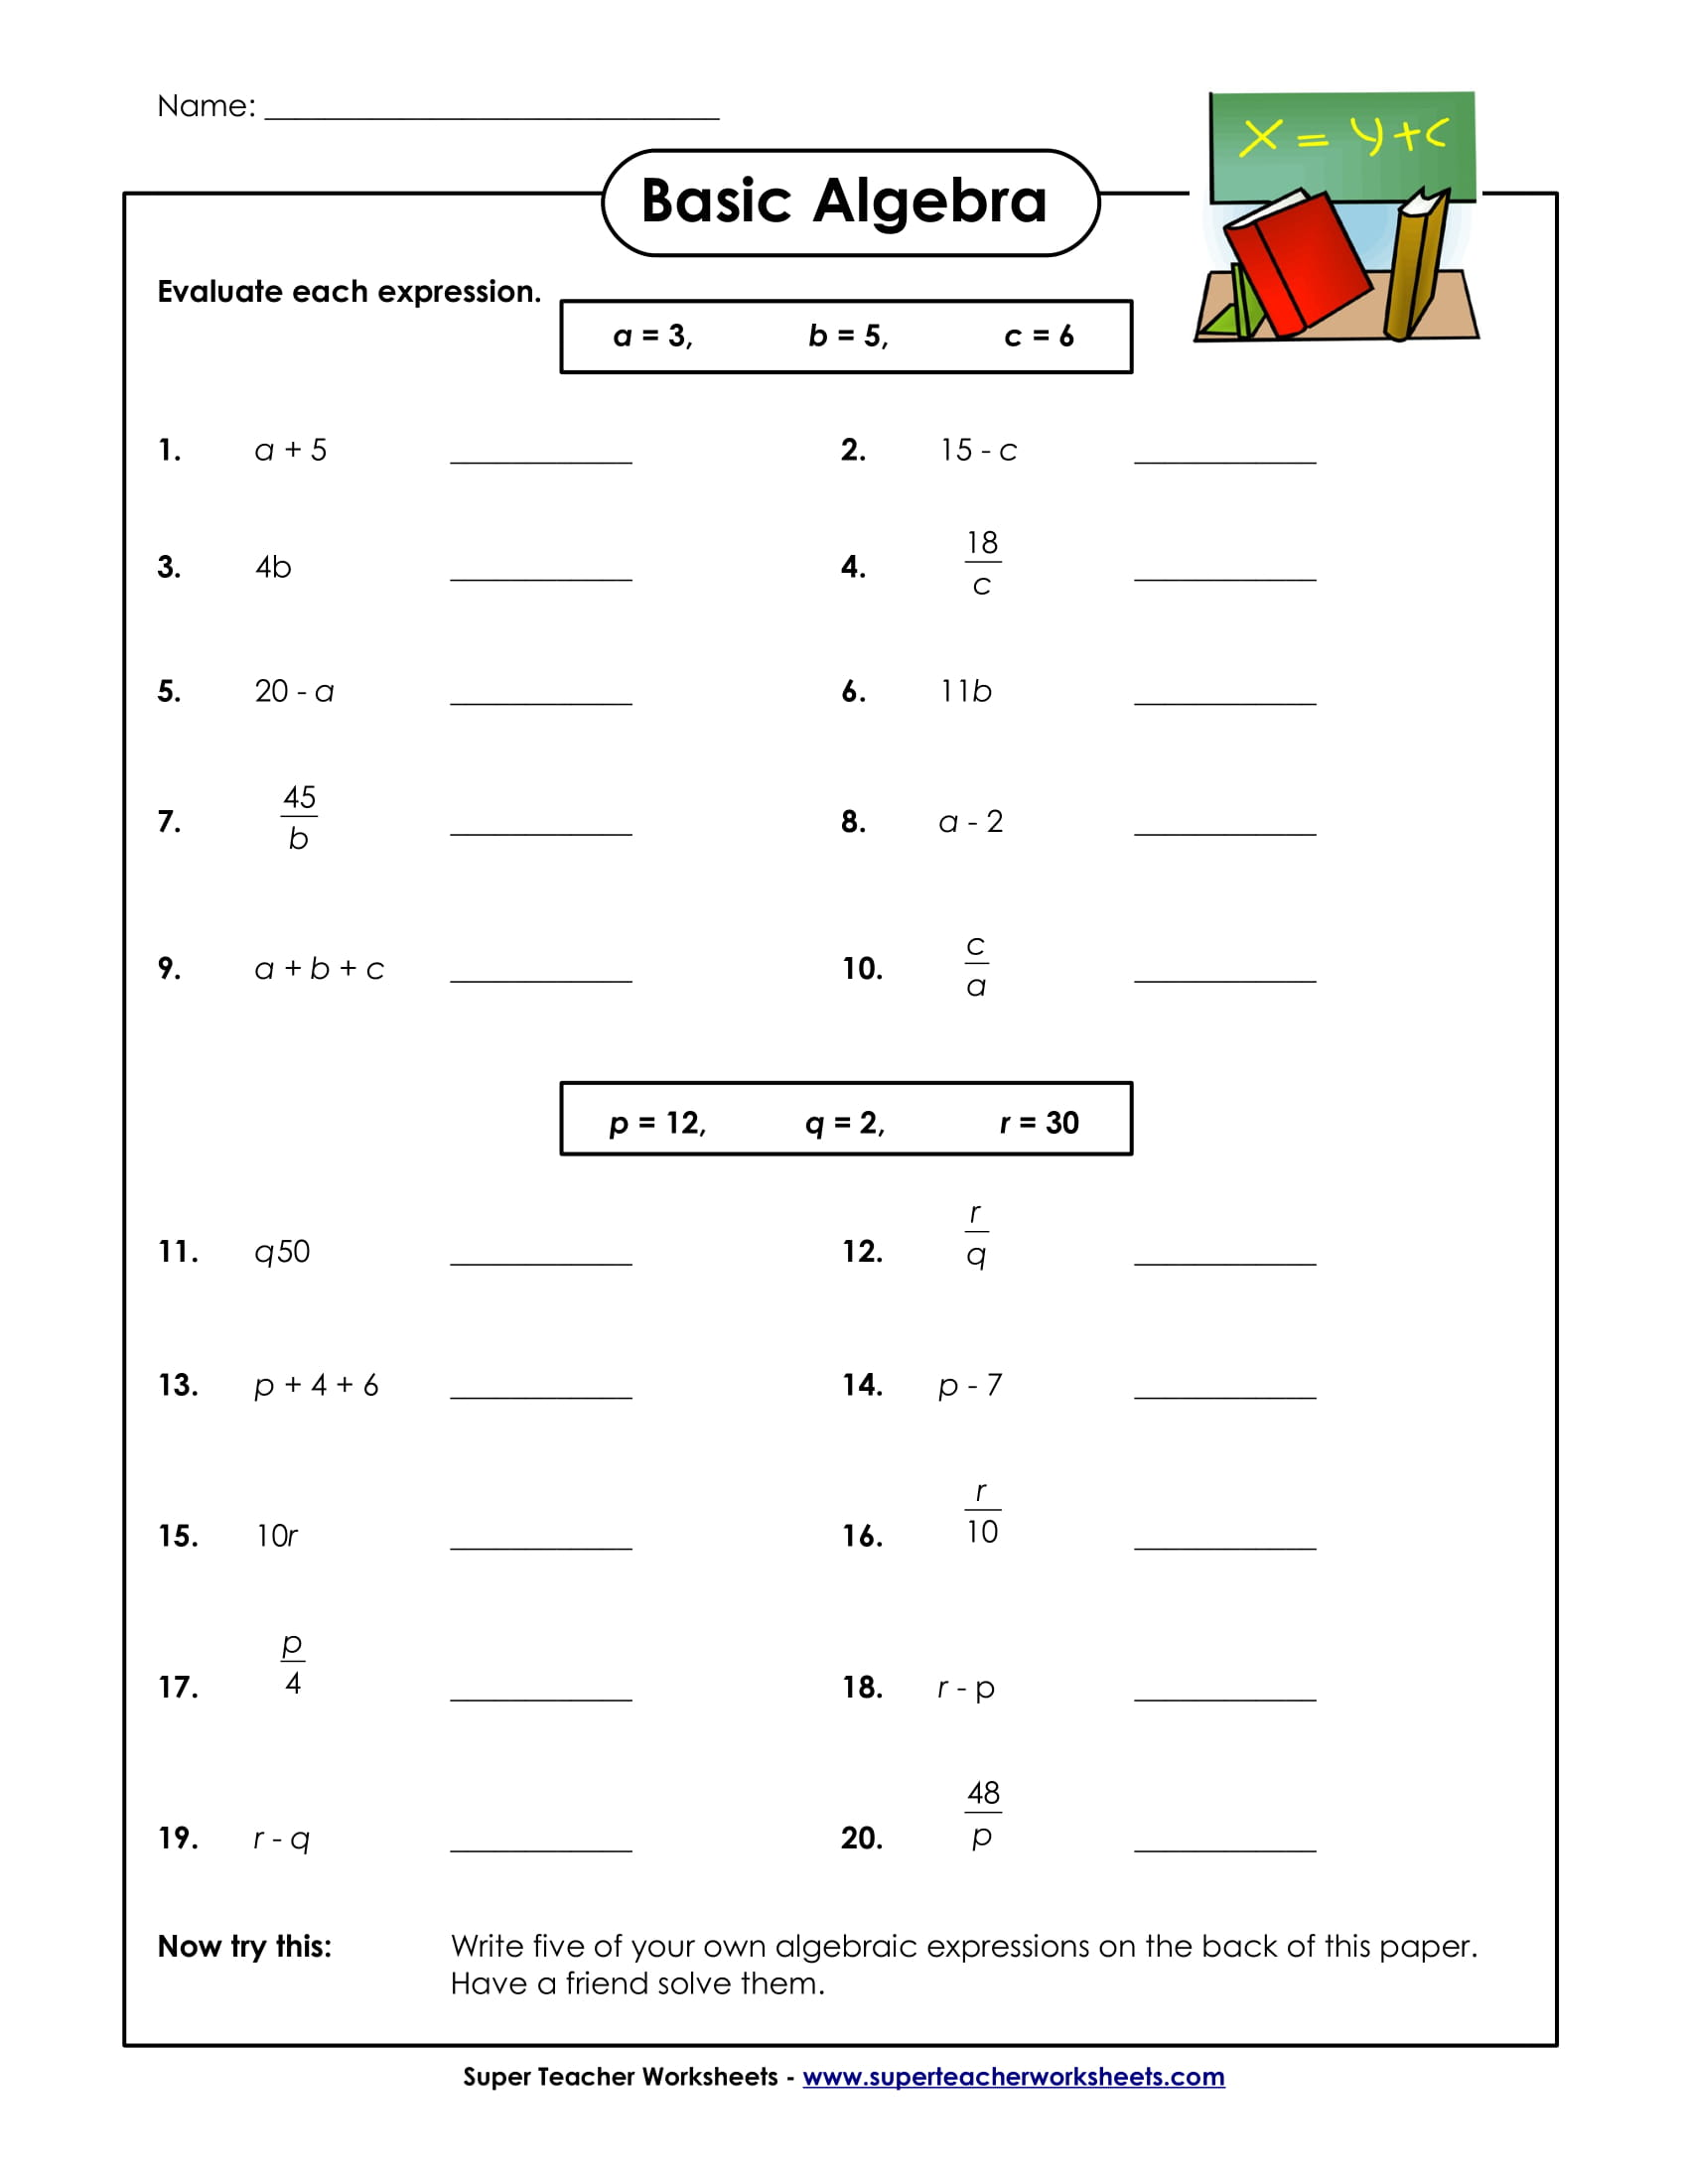 Worksheets Algebra For Beginners Worksheets 9 math worksheets for students pdf basic algebra sample worksheet